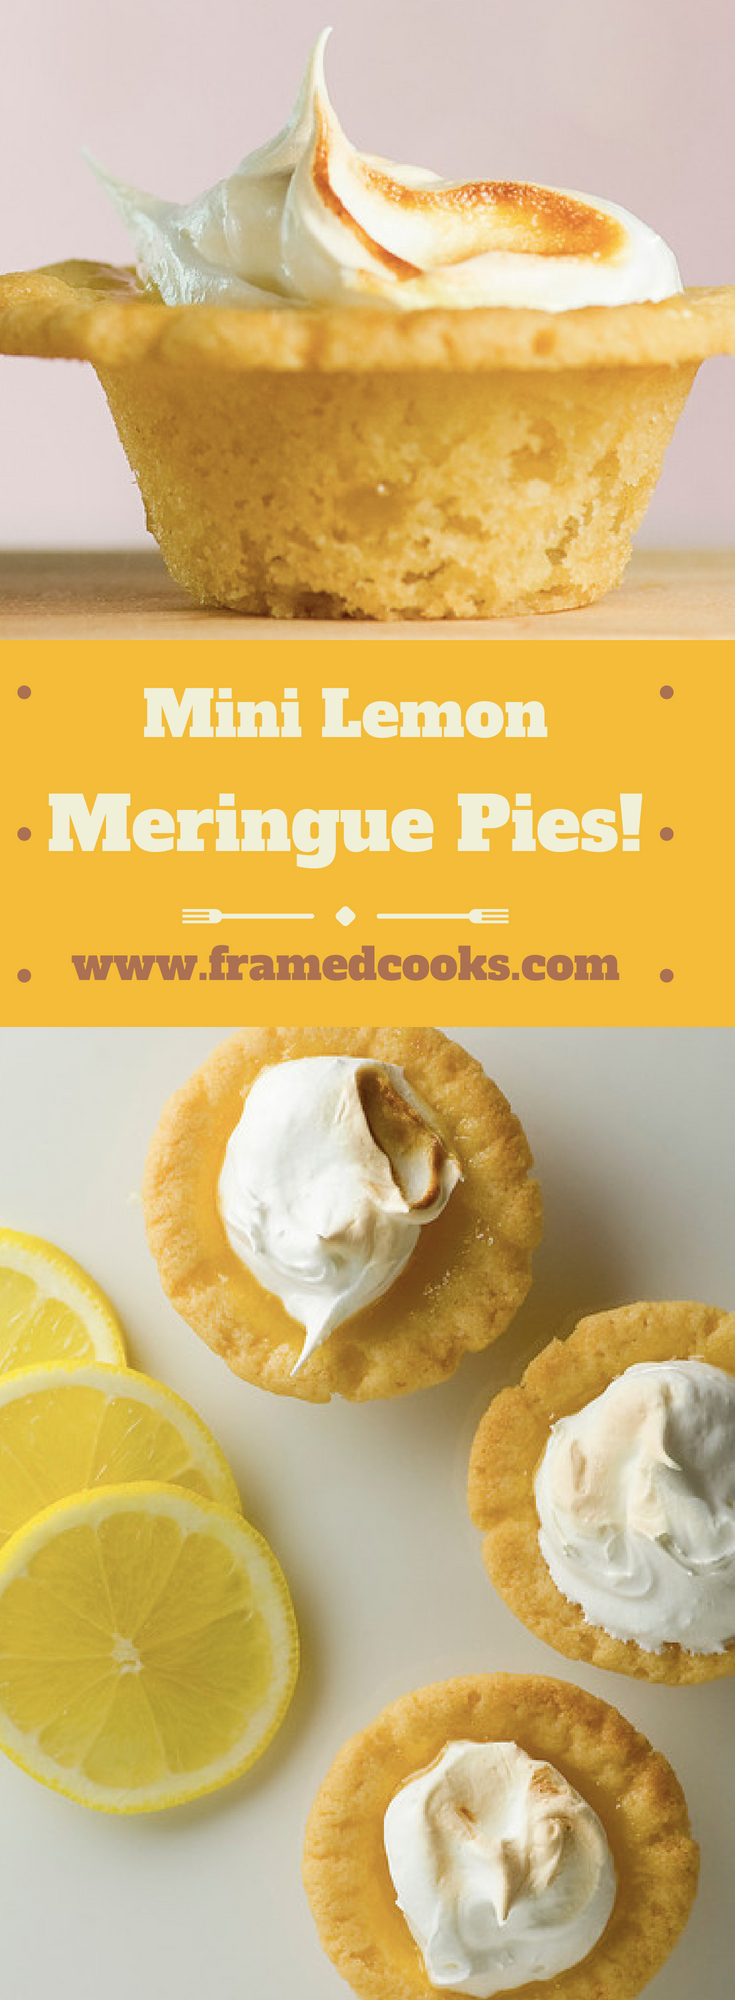 This fun recipe for mini lemon meringue pies is perfect for when you don't want a whole big dessert. A sugar cookie dough crust makes them extra delicious!